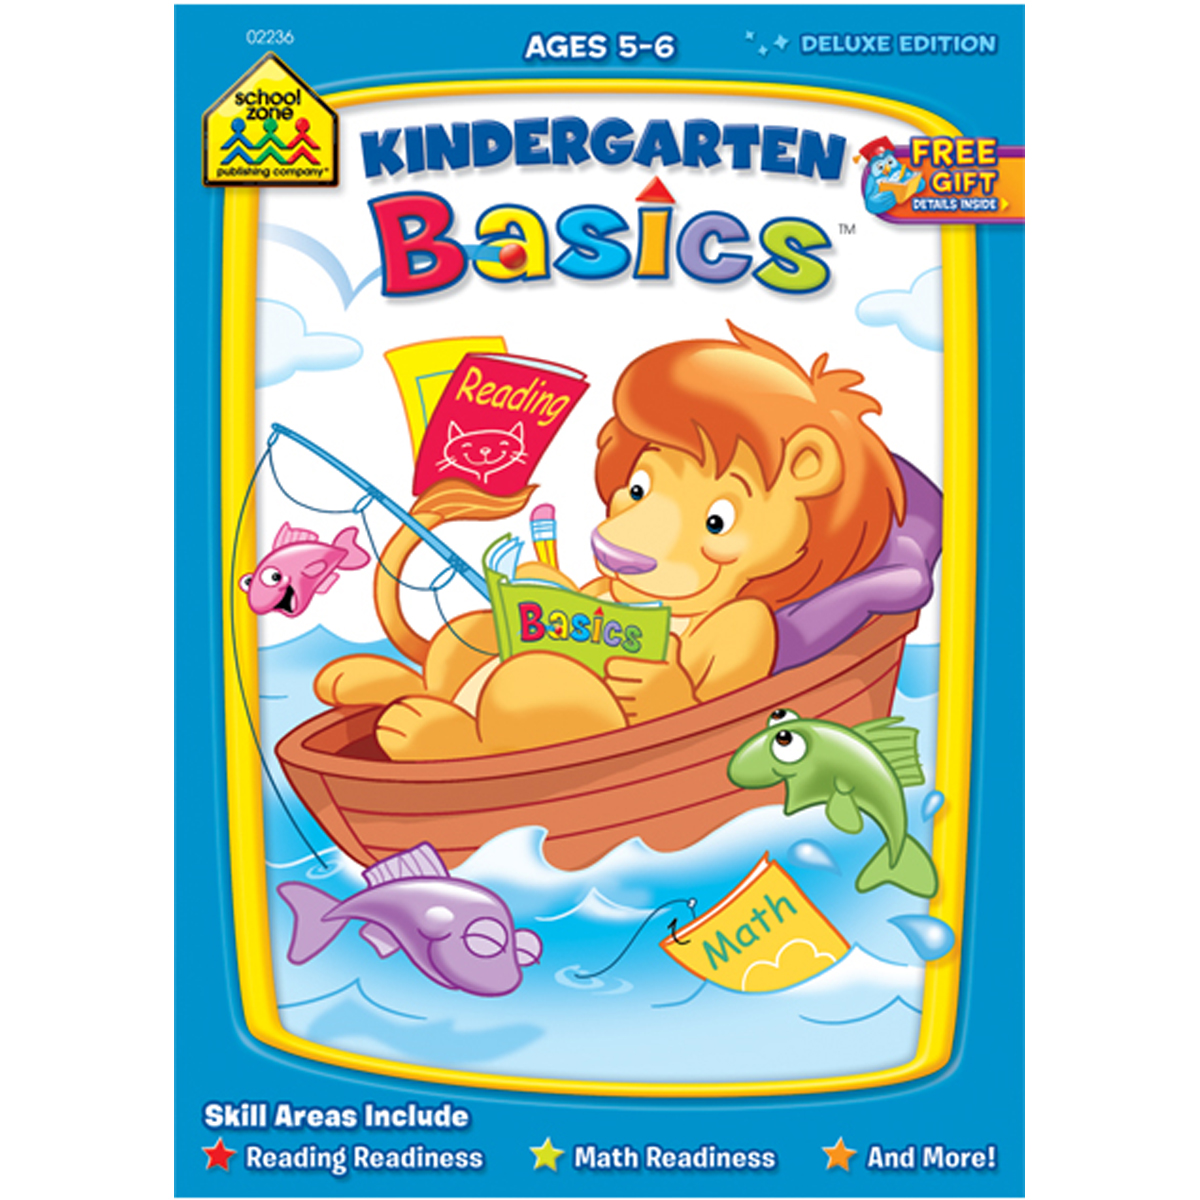 Workbook-kindergarten Basics - Ages 5-6